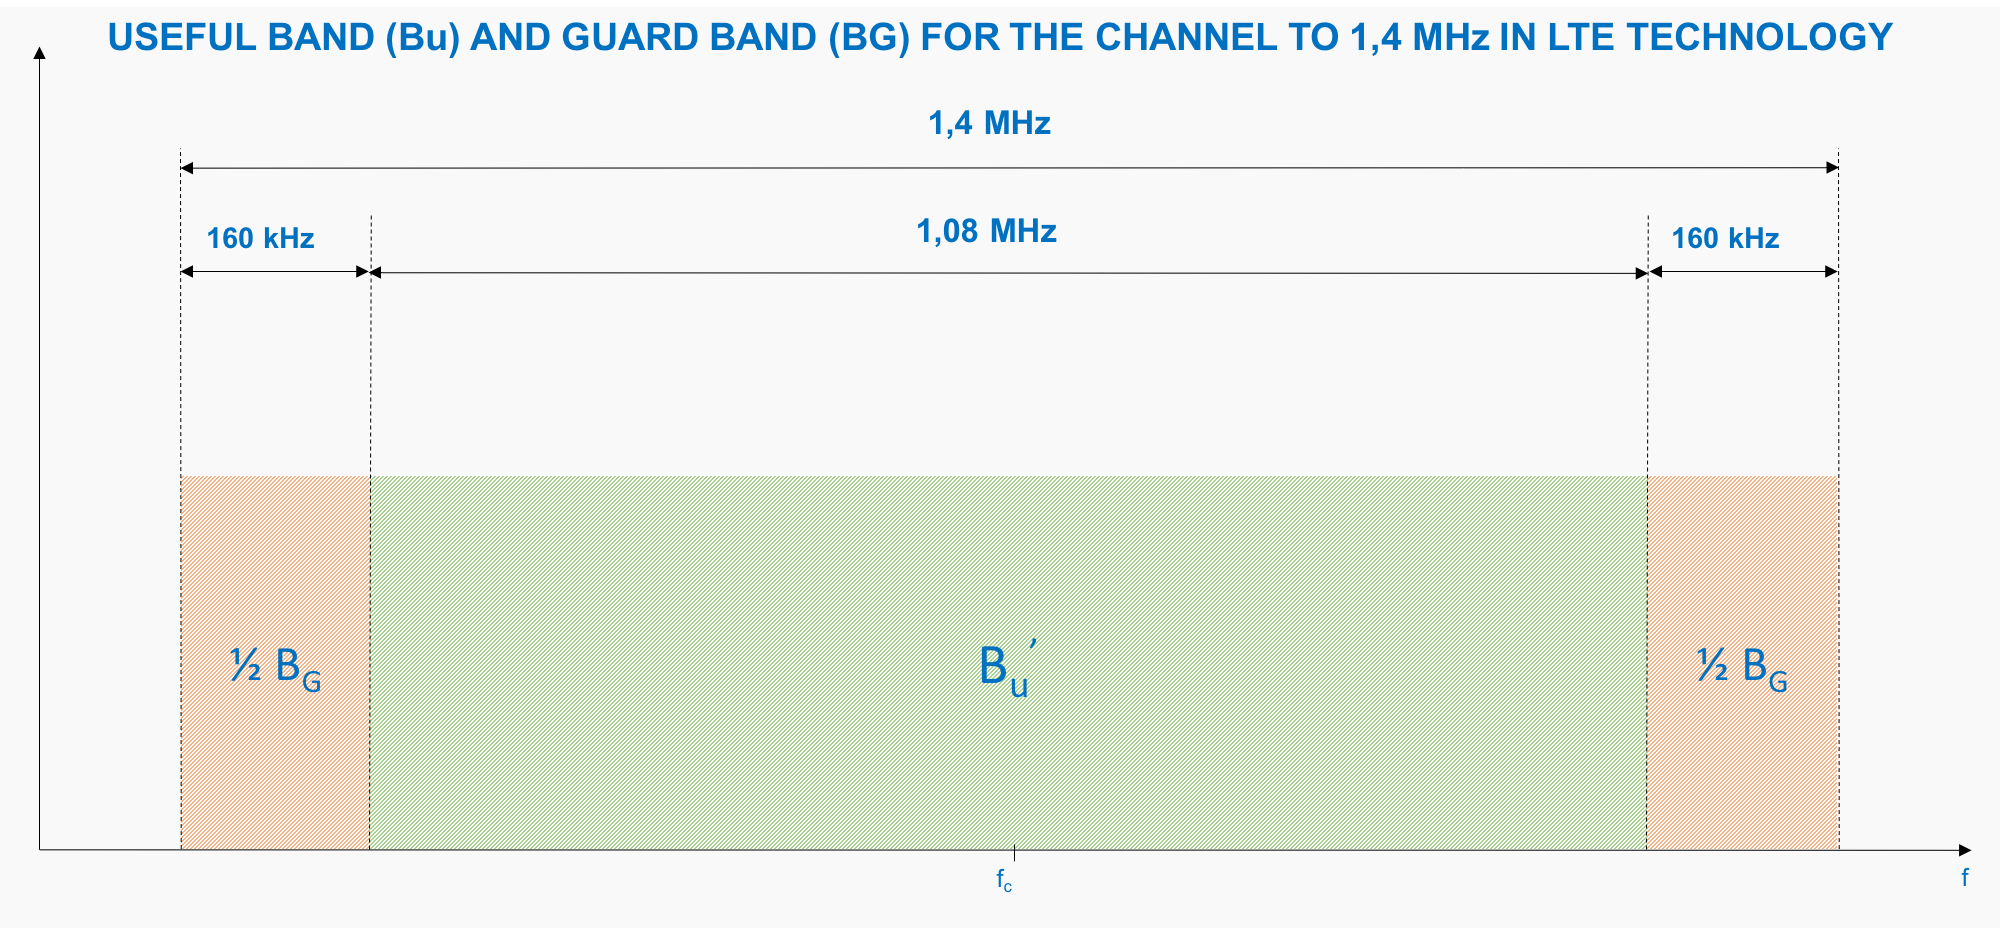 Useful Band and Guard Band 1,4 MHz